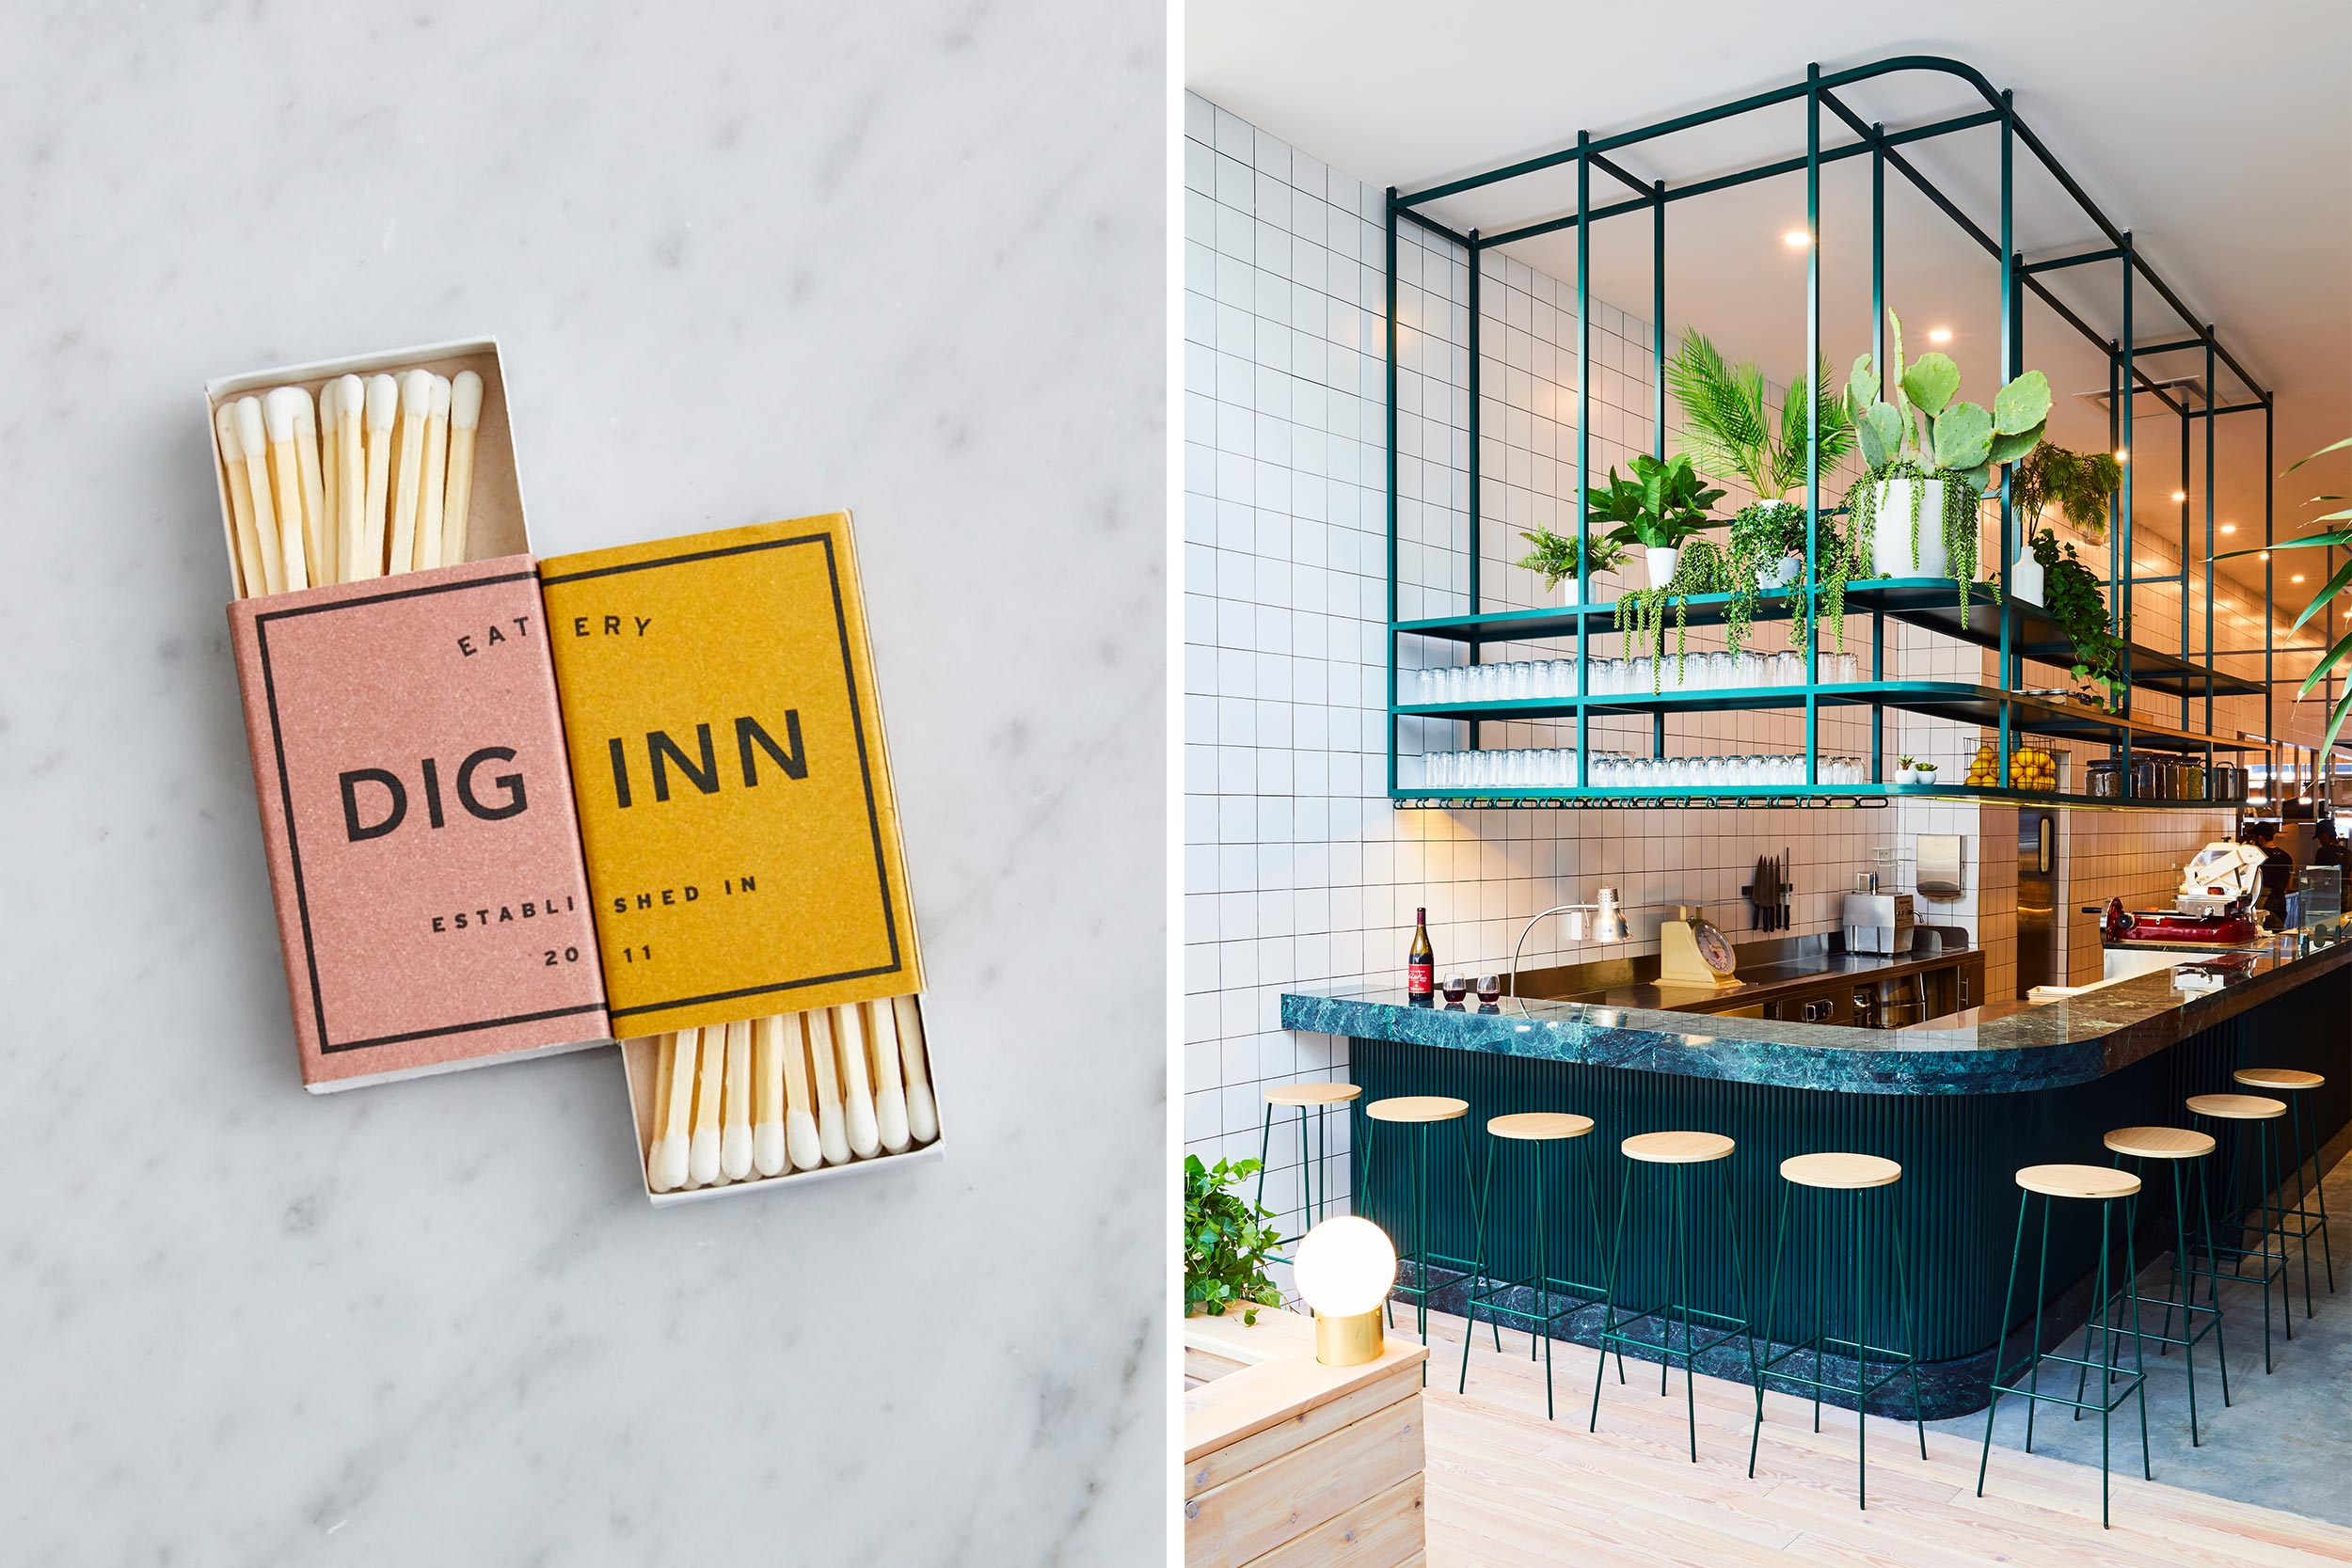 LEFT  Dig Inn merchandise; matchboxes.  Photo by Henry Hargreaves.   RIGHT  Charcuterie and wine bar at Dig Inn Rye Brook.  Photo by Christian Harder.